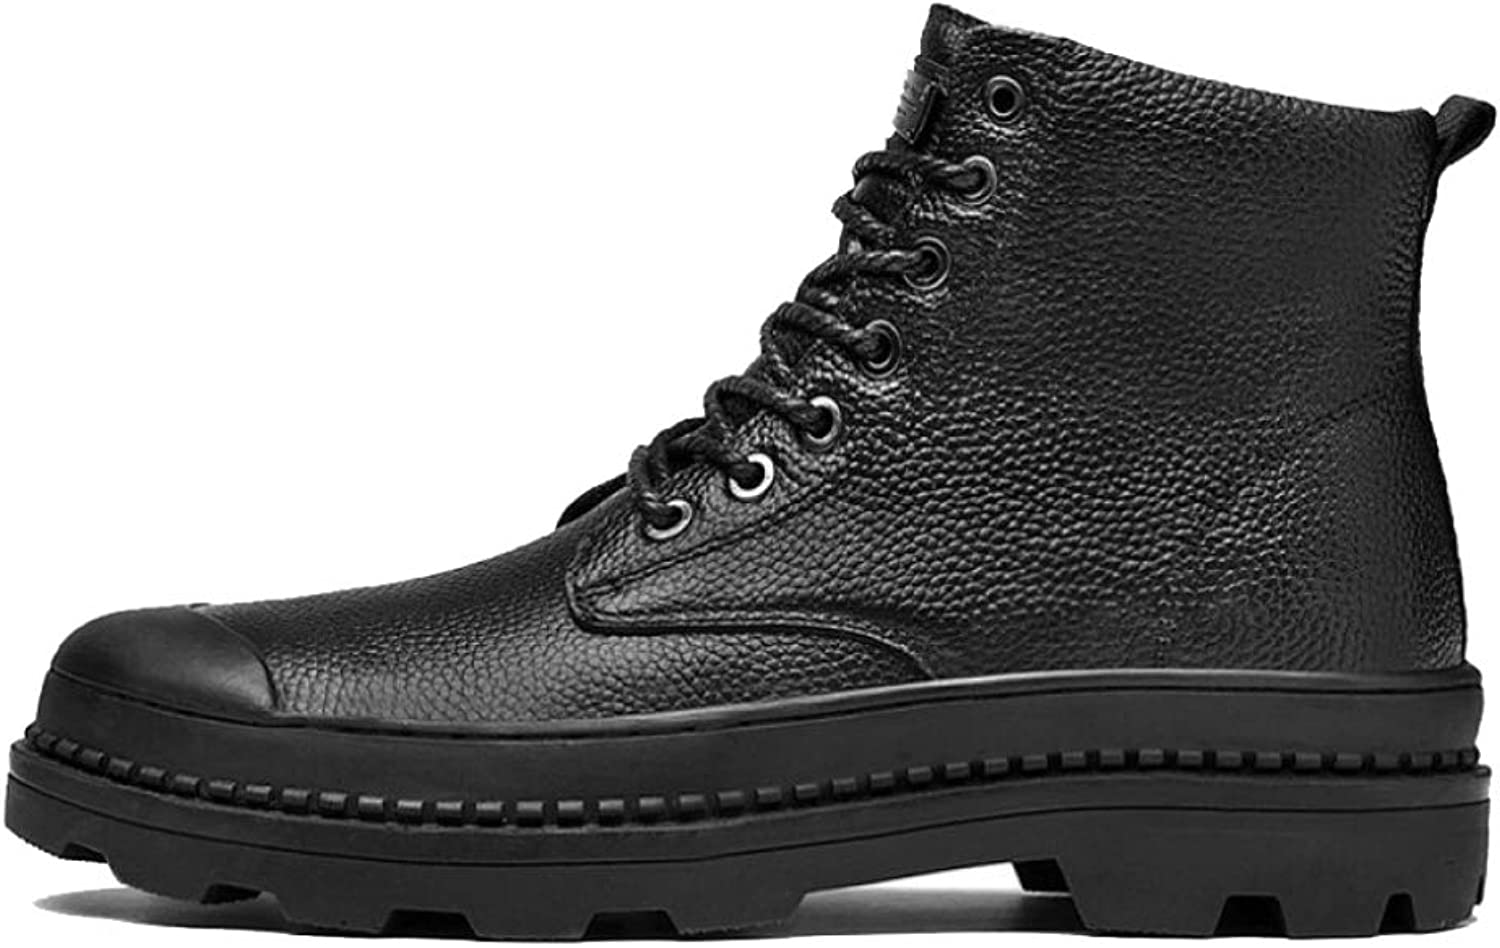 NDHSH Mens Leather Lace Up Boot Industrial Work Safety Boots Dealer Slip Boots Casual Smart Round Toe Outdoors Boots